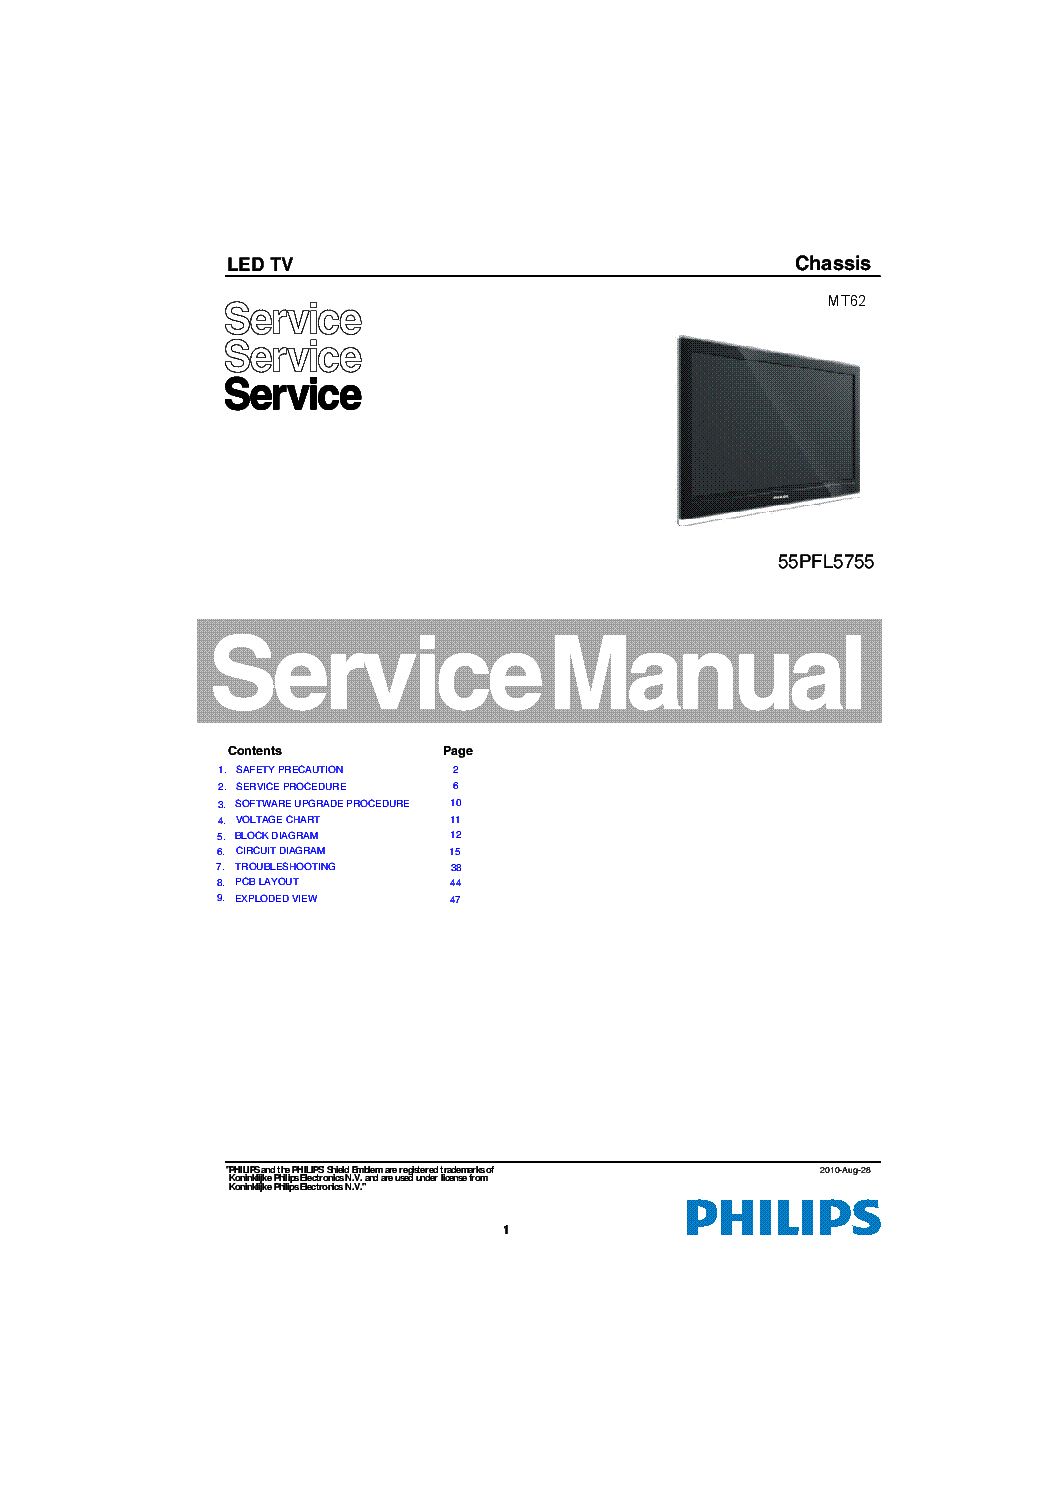 PHILIPS 55PFL5755 V7 DFU ENG service manual